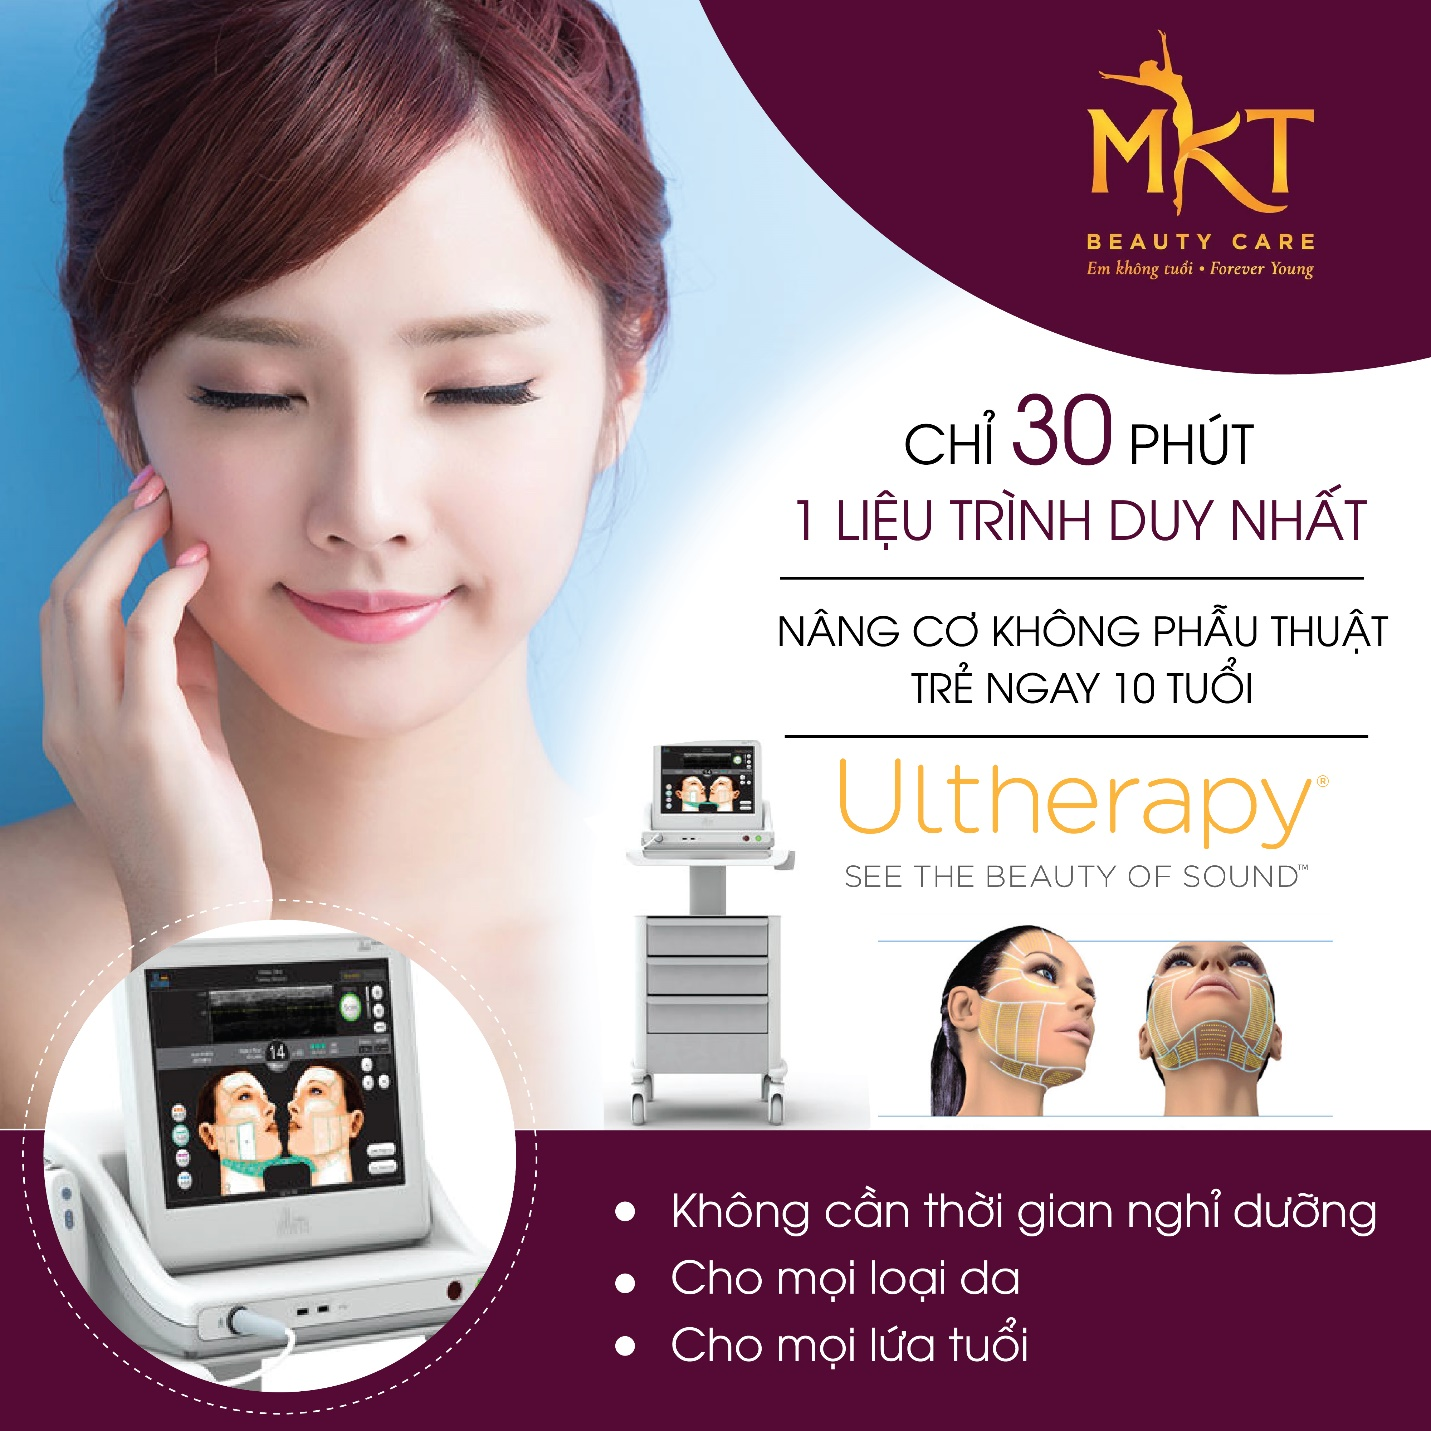 cong-nghe-ultherapy-duoc-dieu-tri-nhung-gi